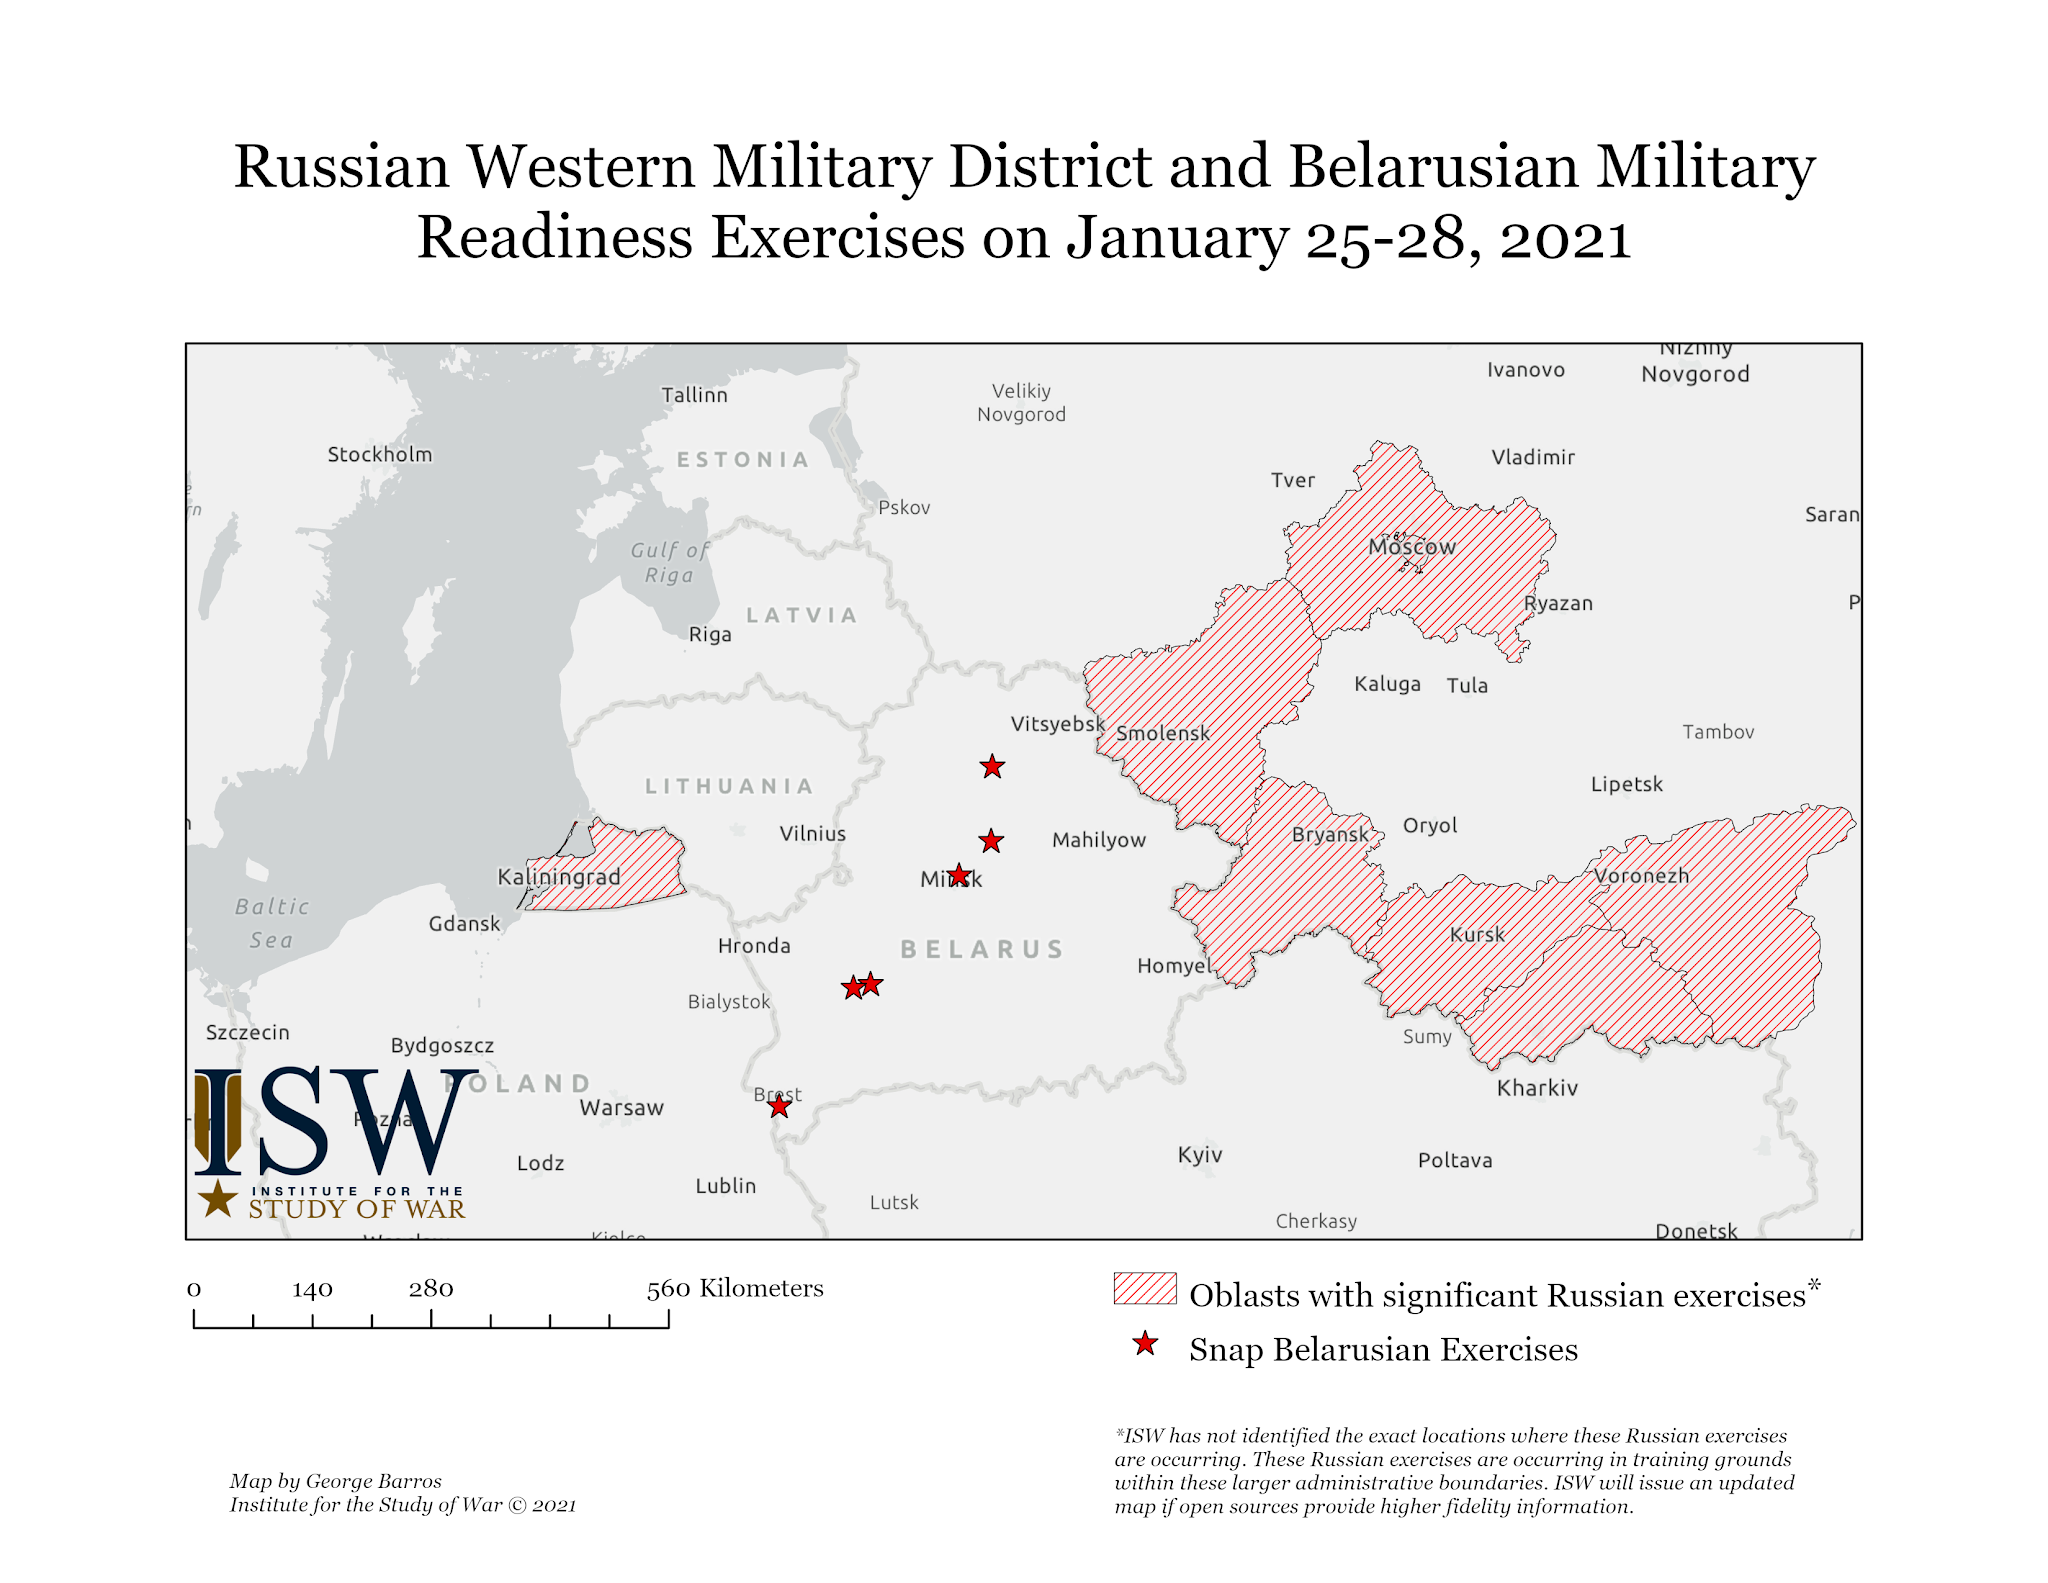 Belarus Warning Update: Moscow and Minsk Hold Simultaneous Combat Readiness Exercises in Kaliningrad, Mainland Russia, and Belarus